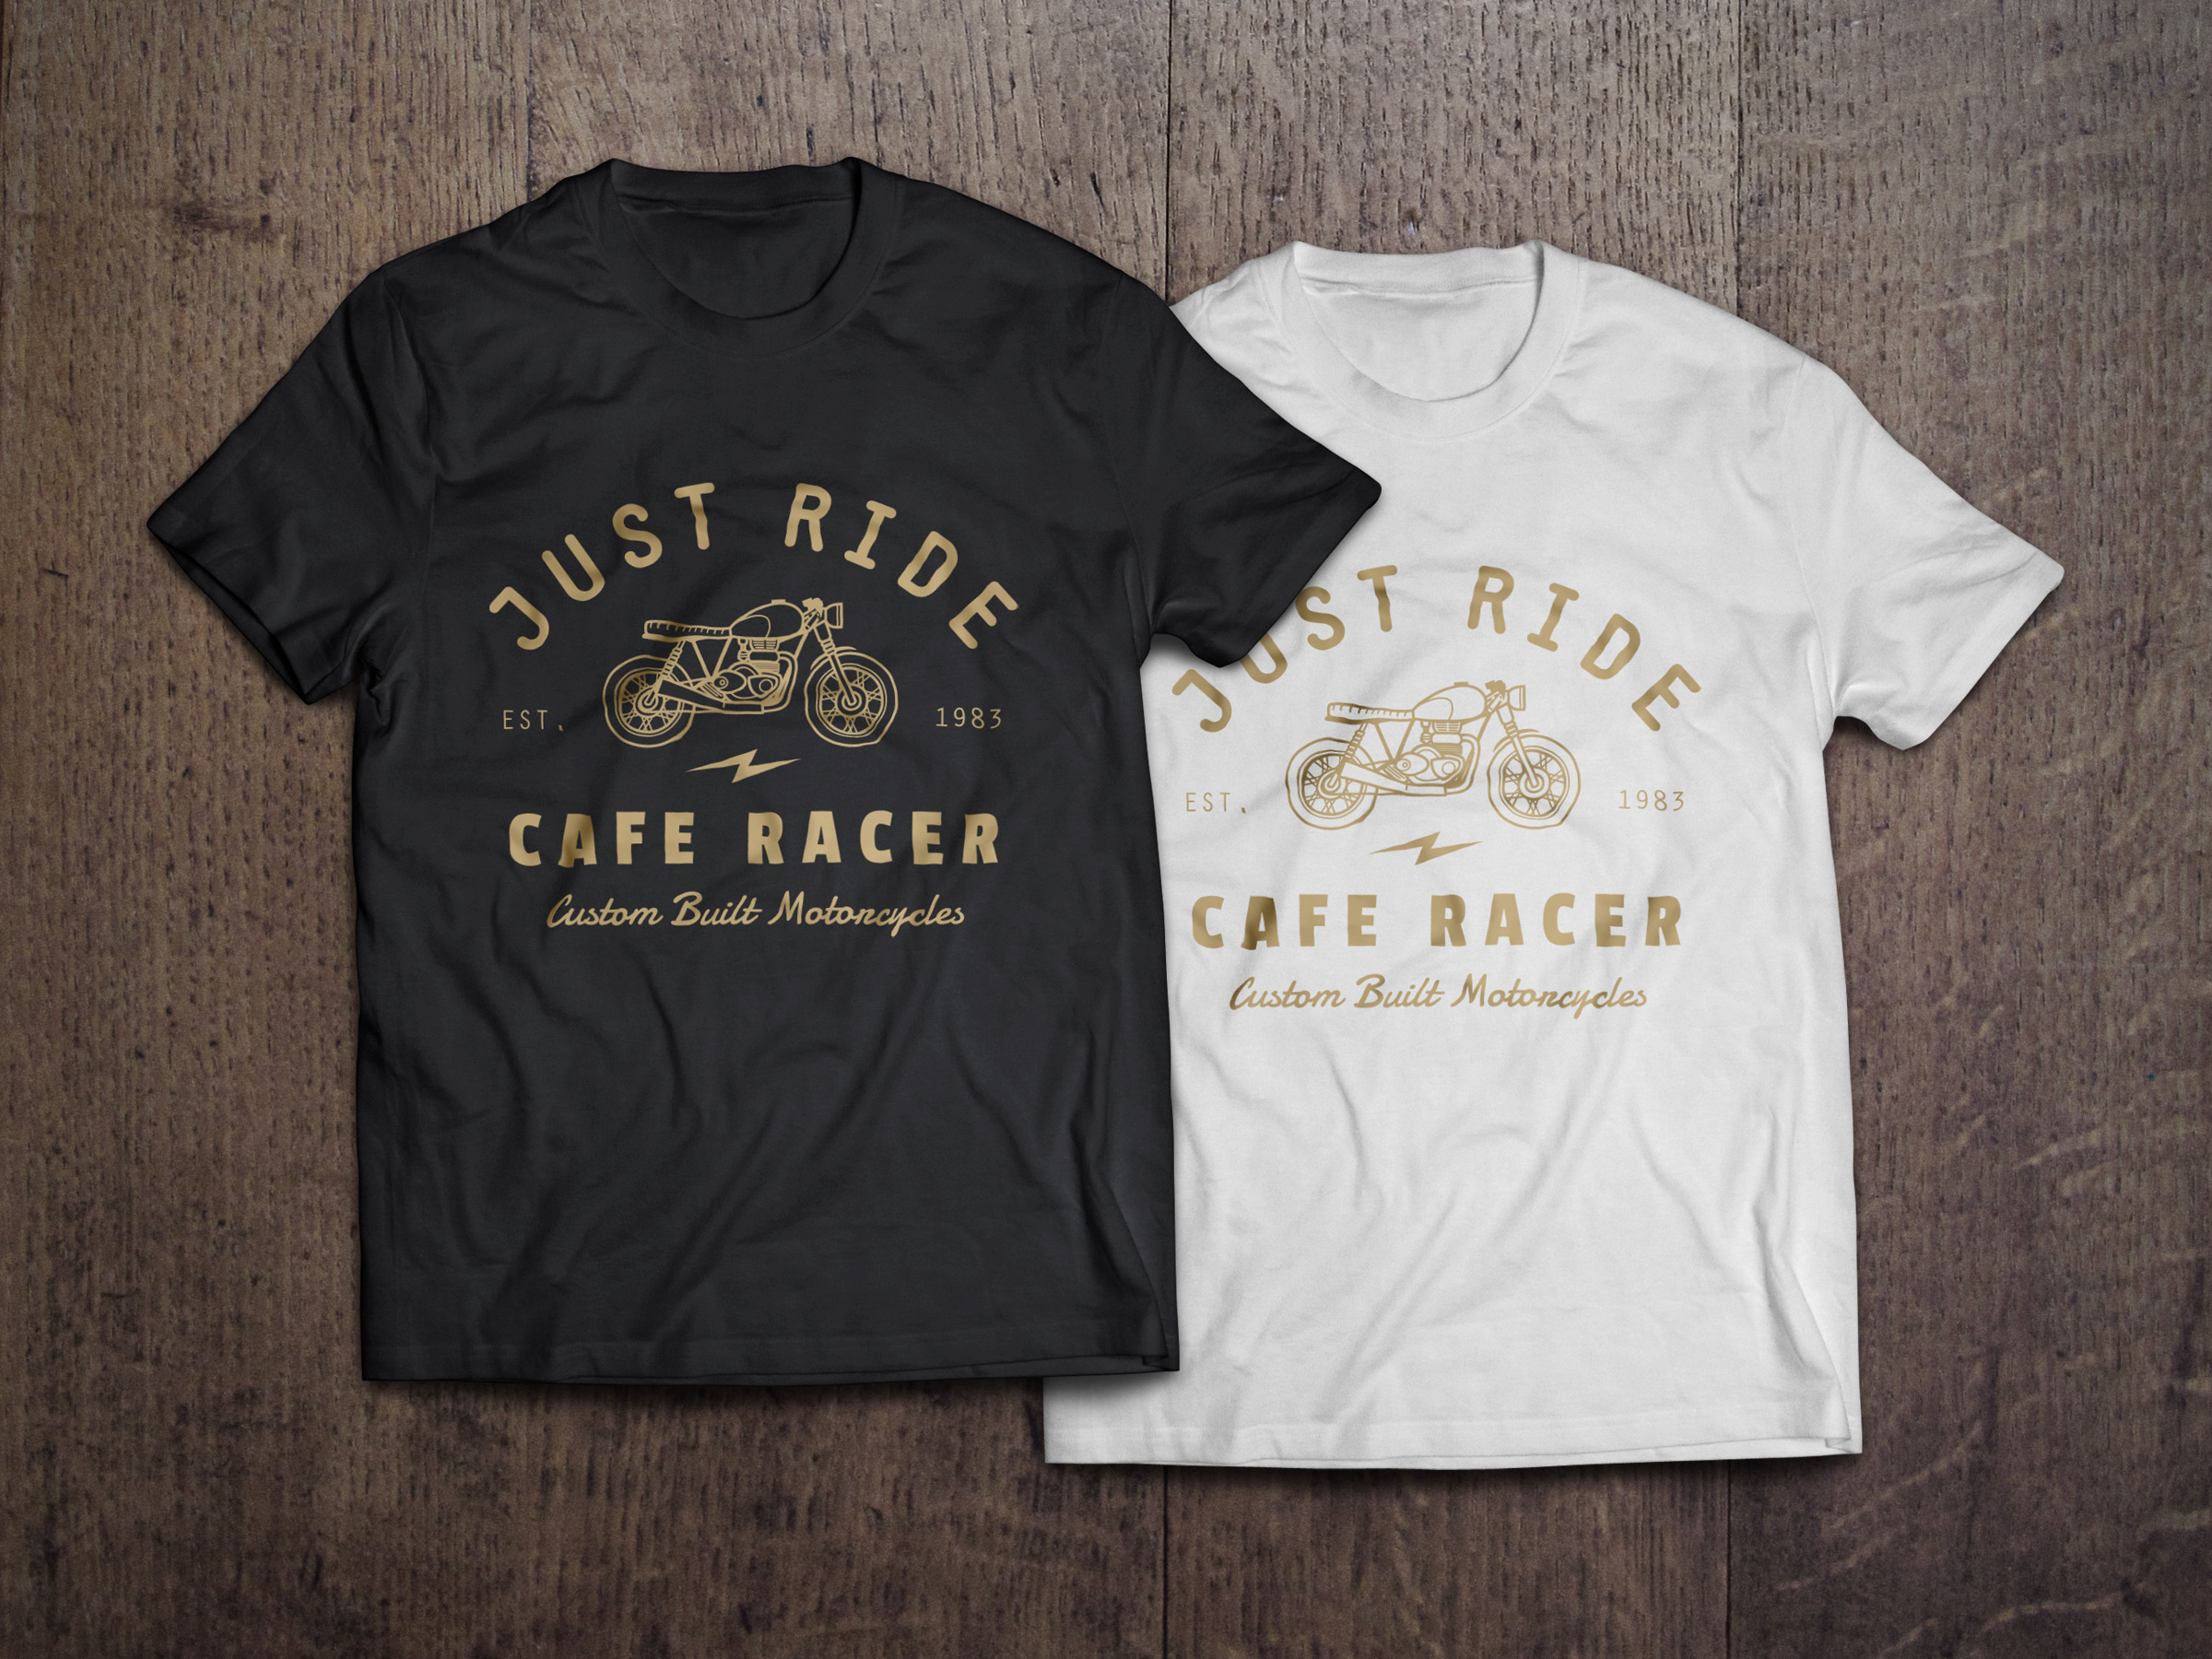 14 Black T-Shirt Mockup PSD Images